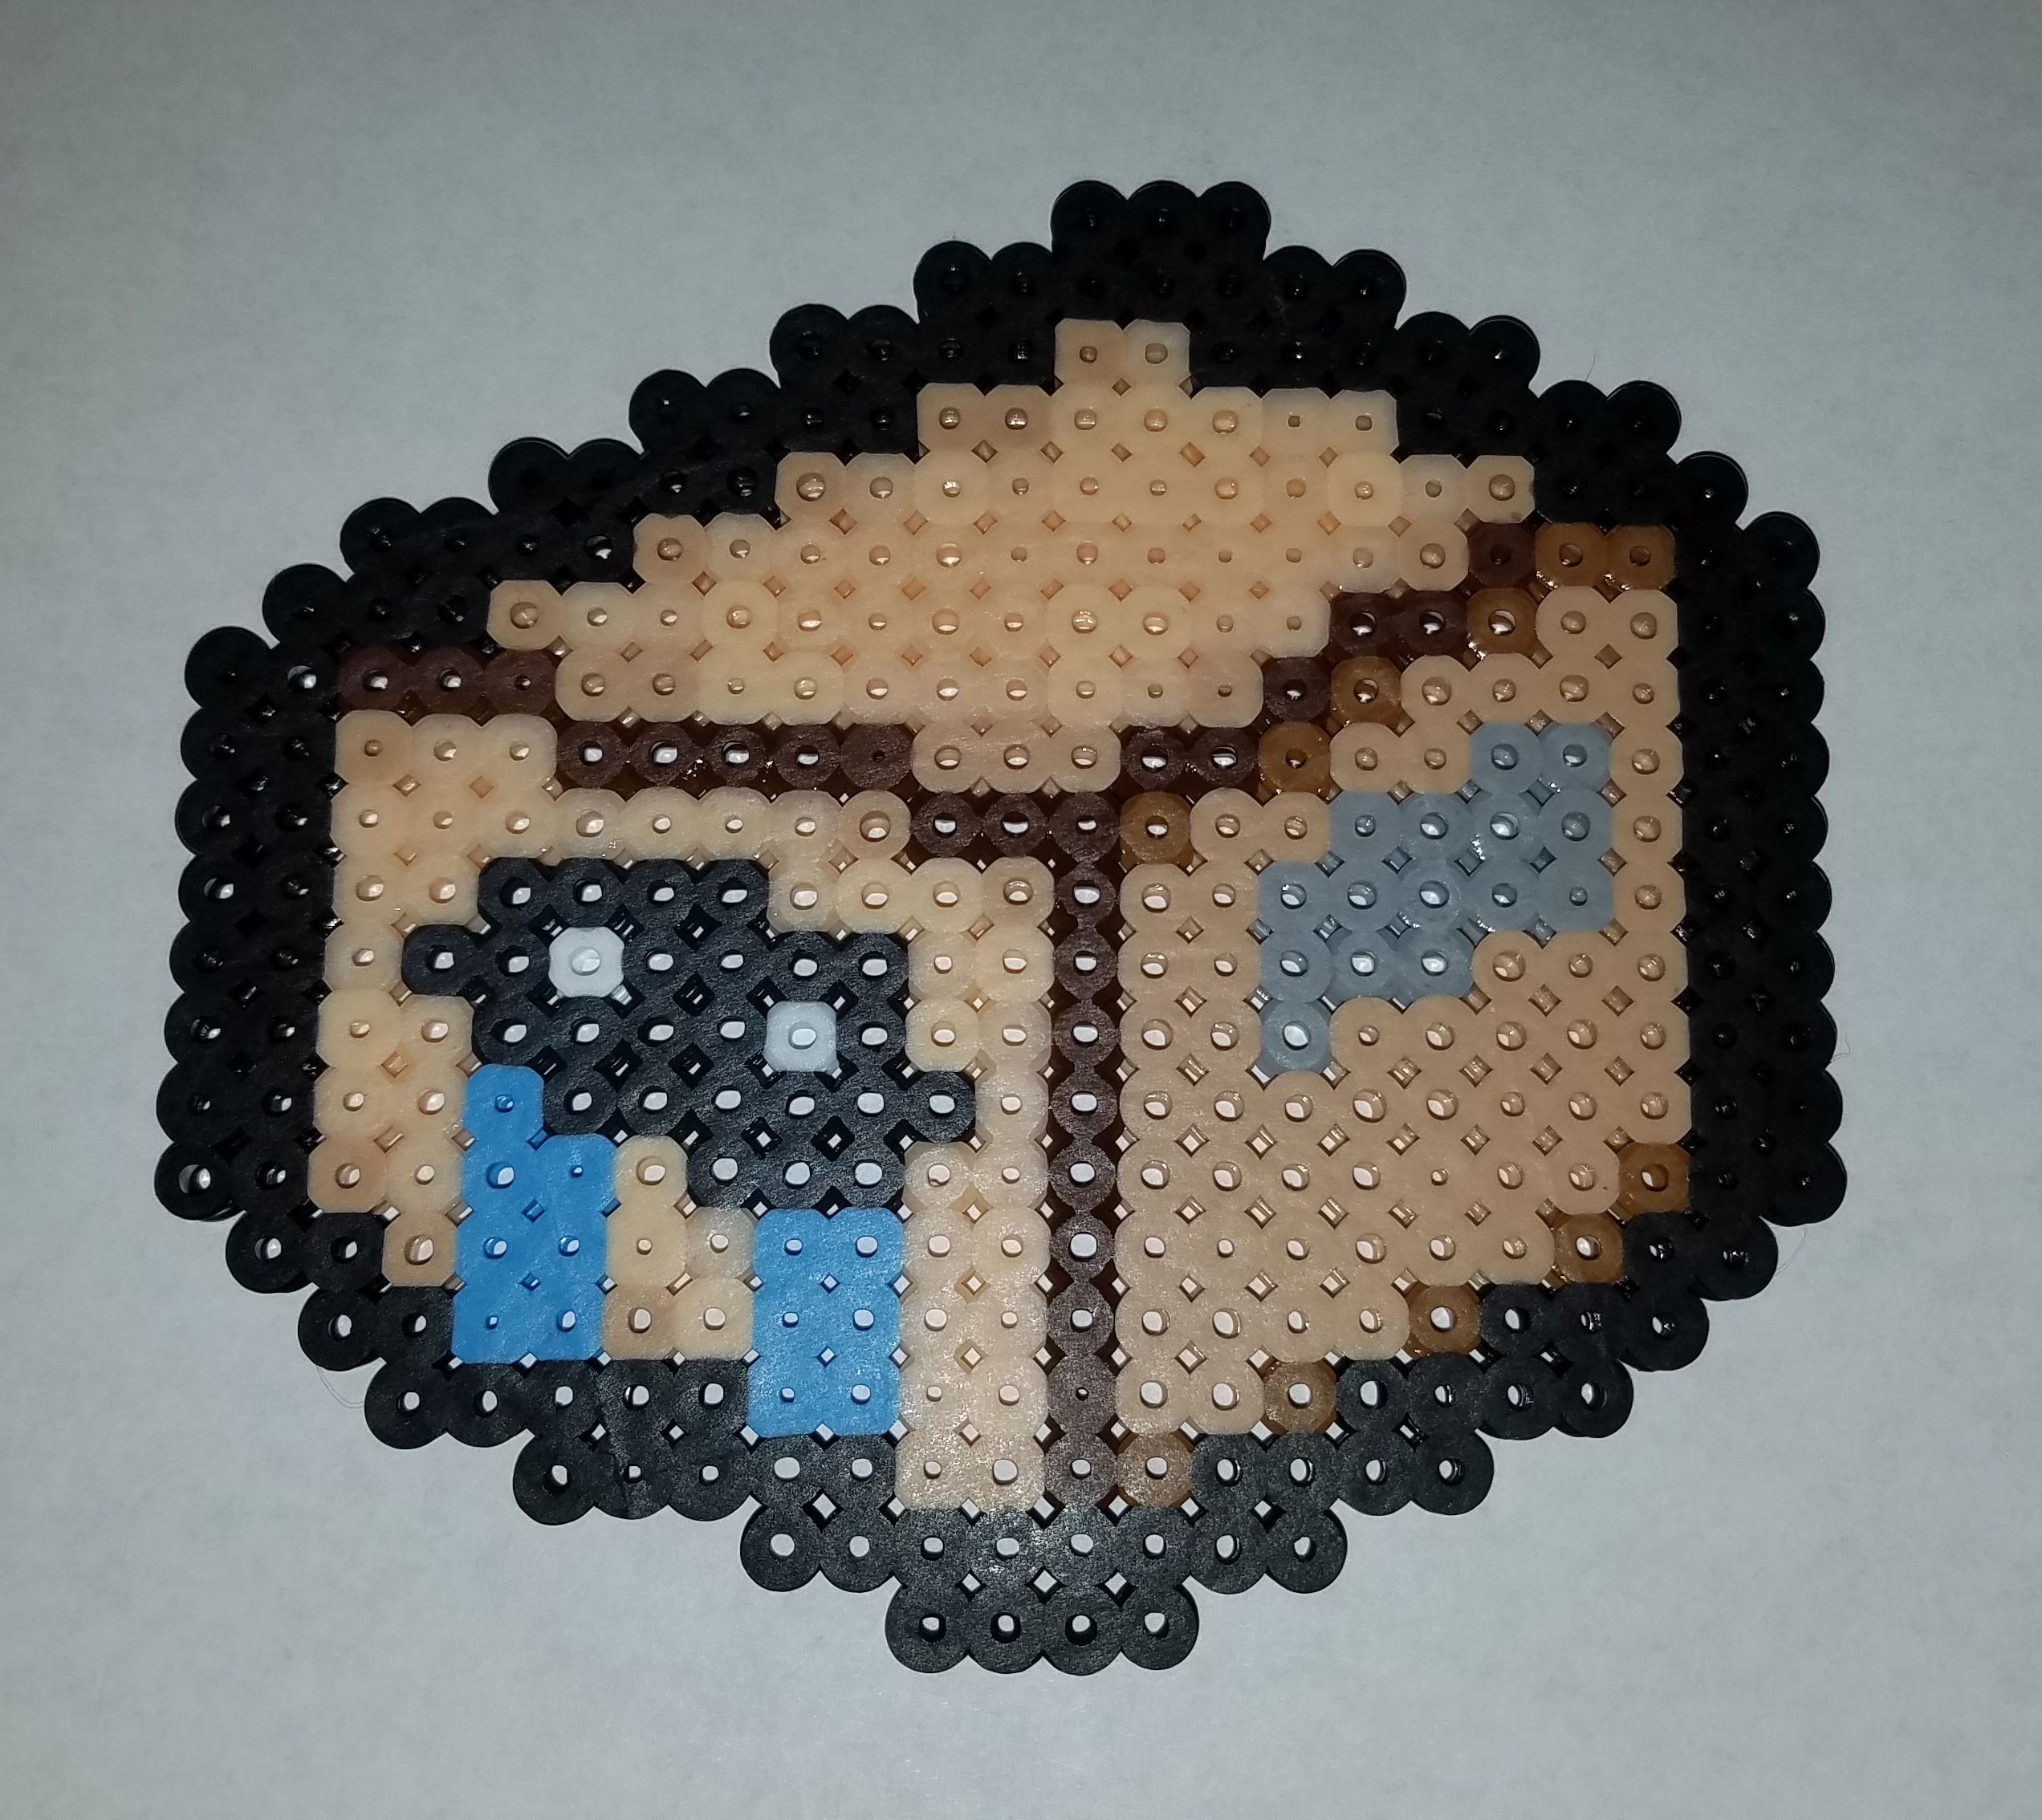 Item From The Binding Of Isaac (Booster